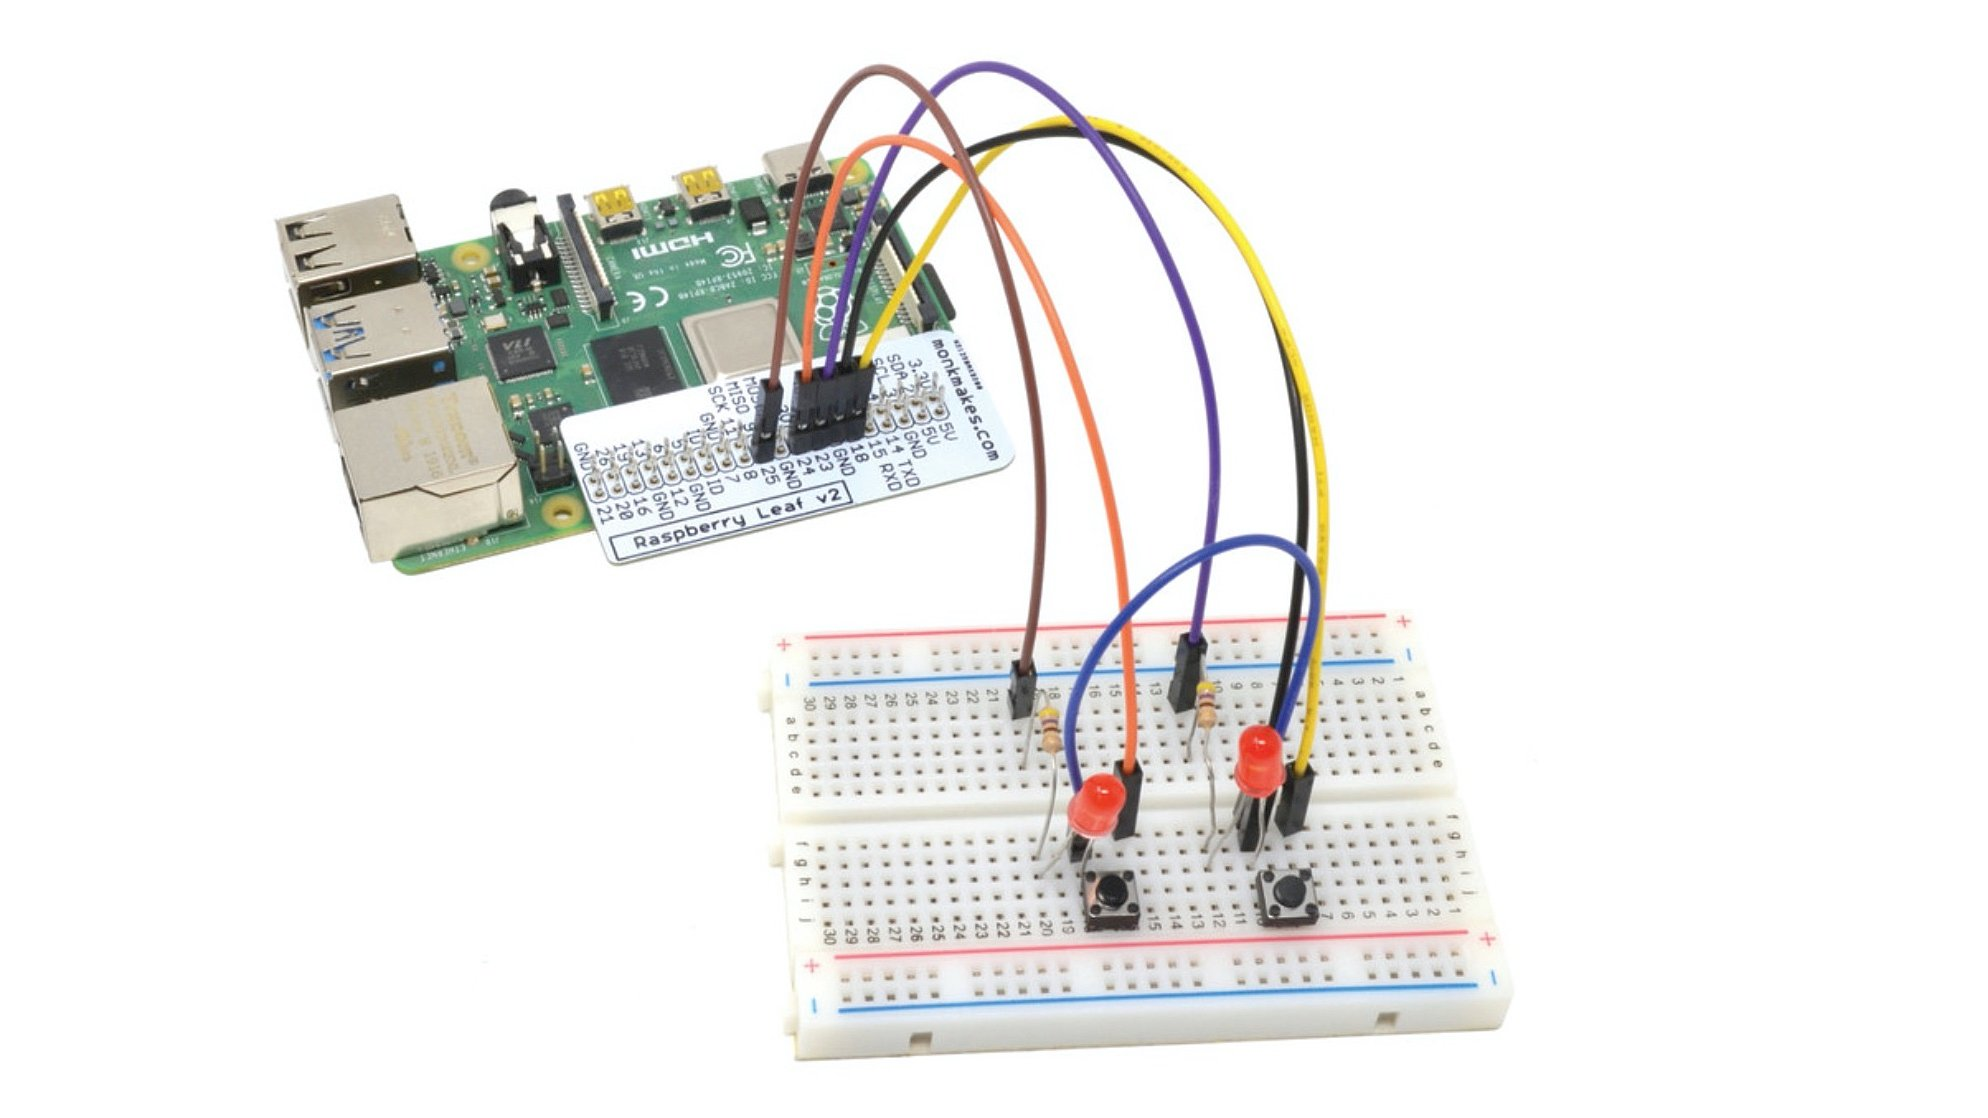 50 Cool Raspberry Pi Projects for January 2021 | All3DP